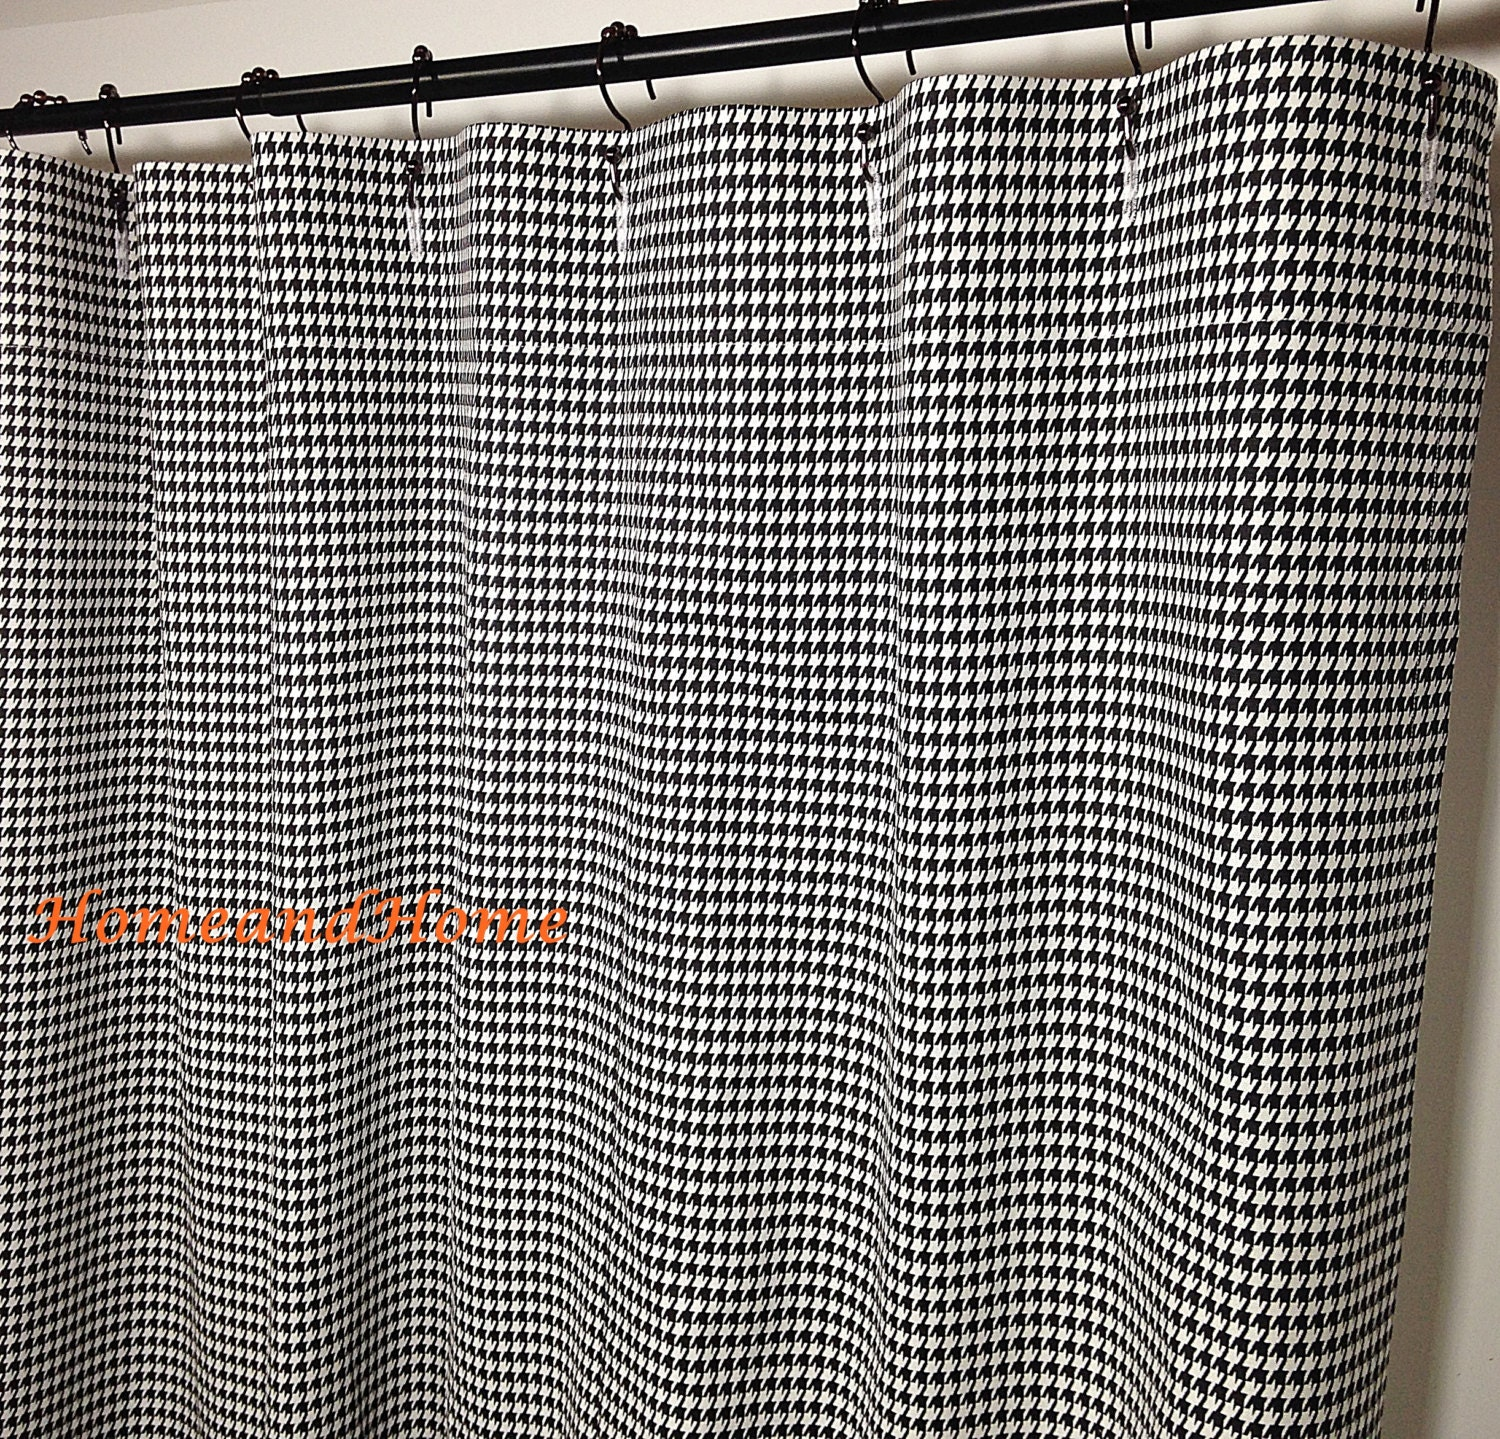 Fabric Shower Curtain Houndstooth Check Black White 72 X 84